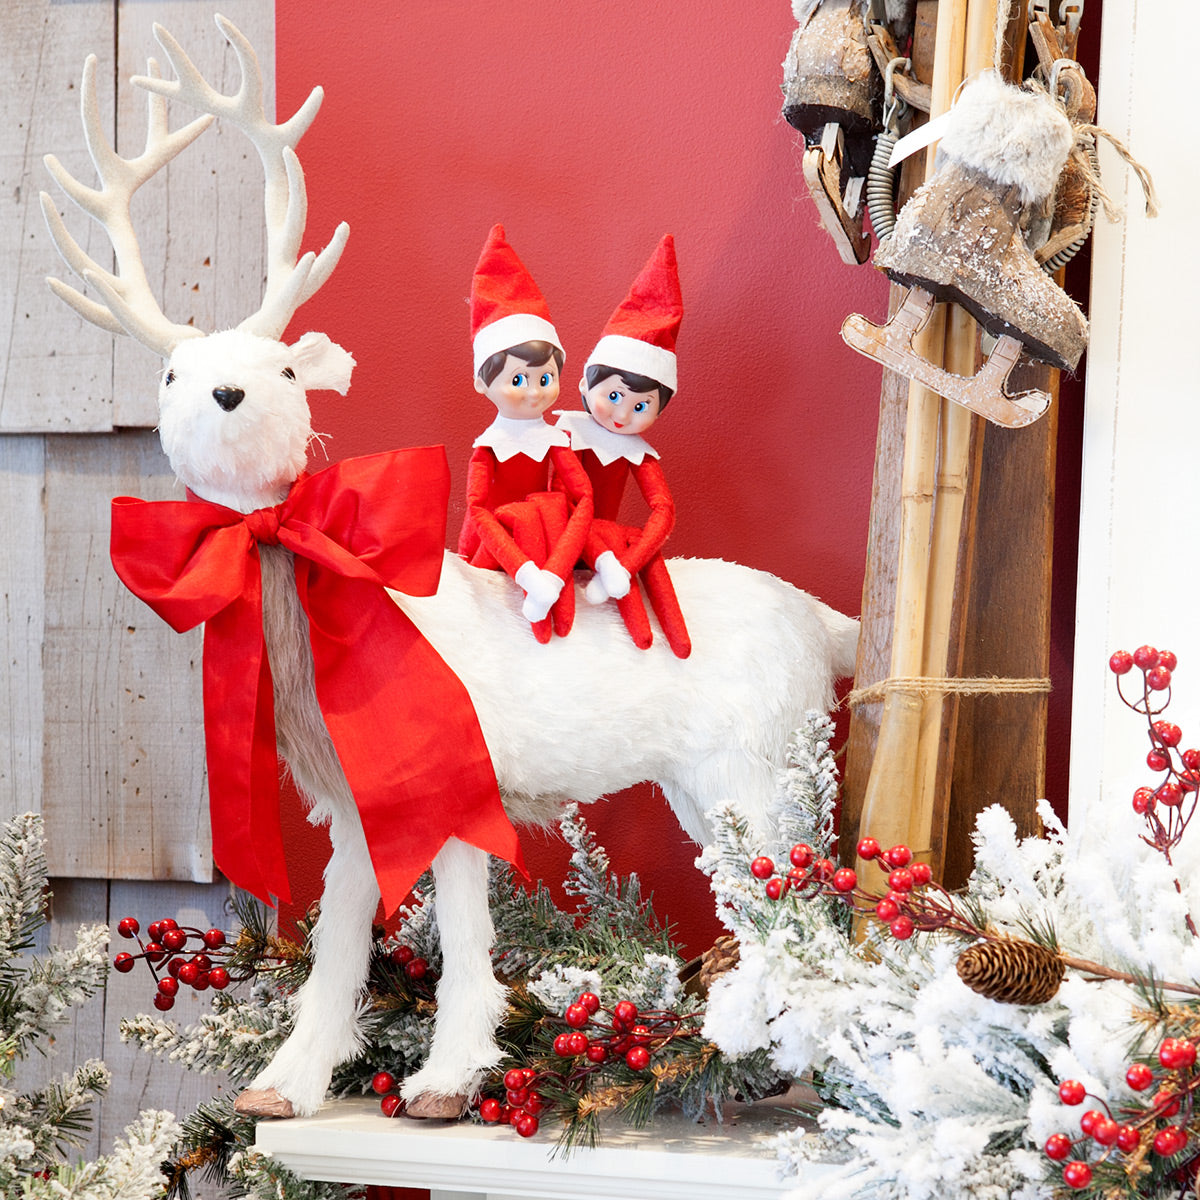 Two elves ride a reindeer in our shop.